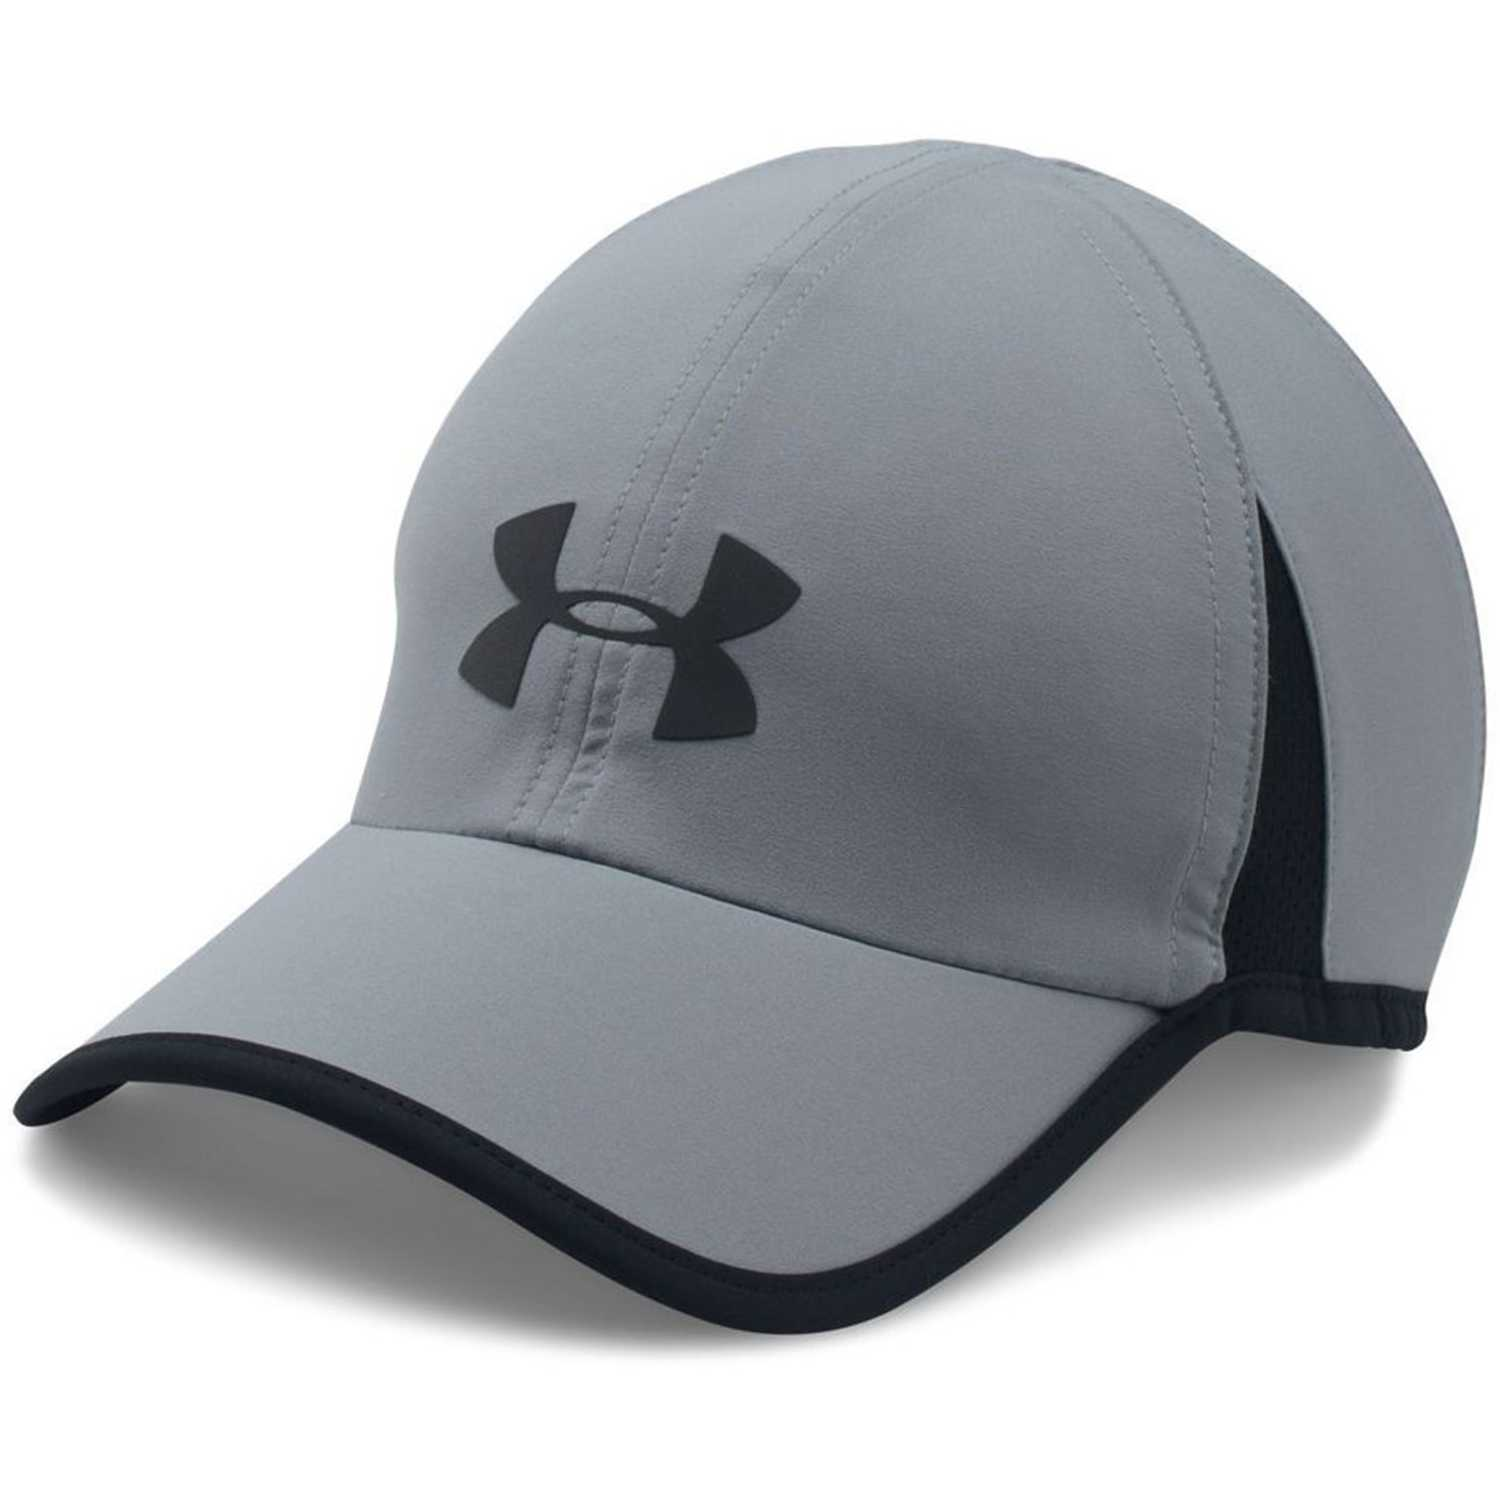 Under Armour Men'S Shadow Cap 4.0 Gris / negro Gorras de béisbol